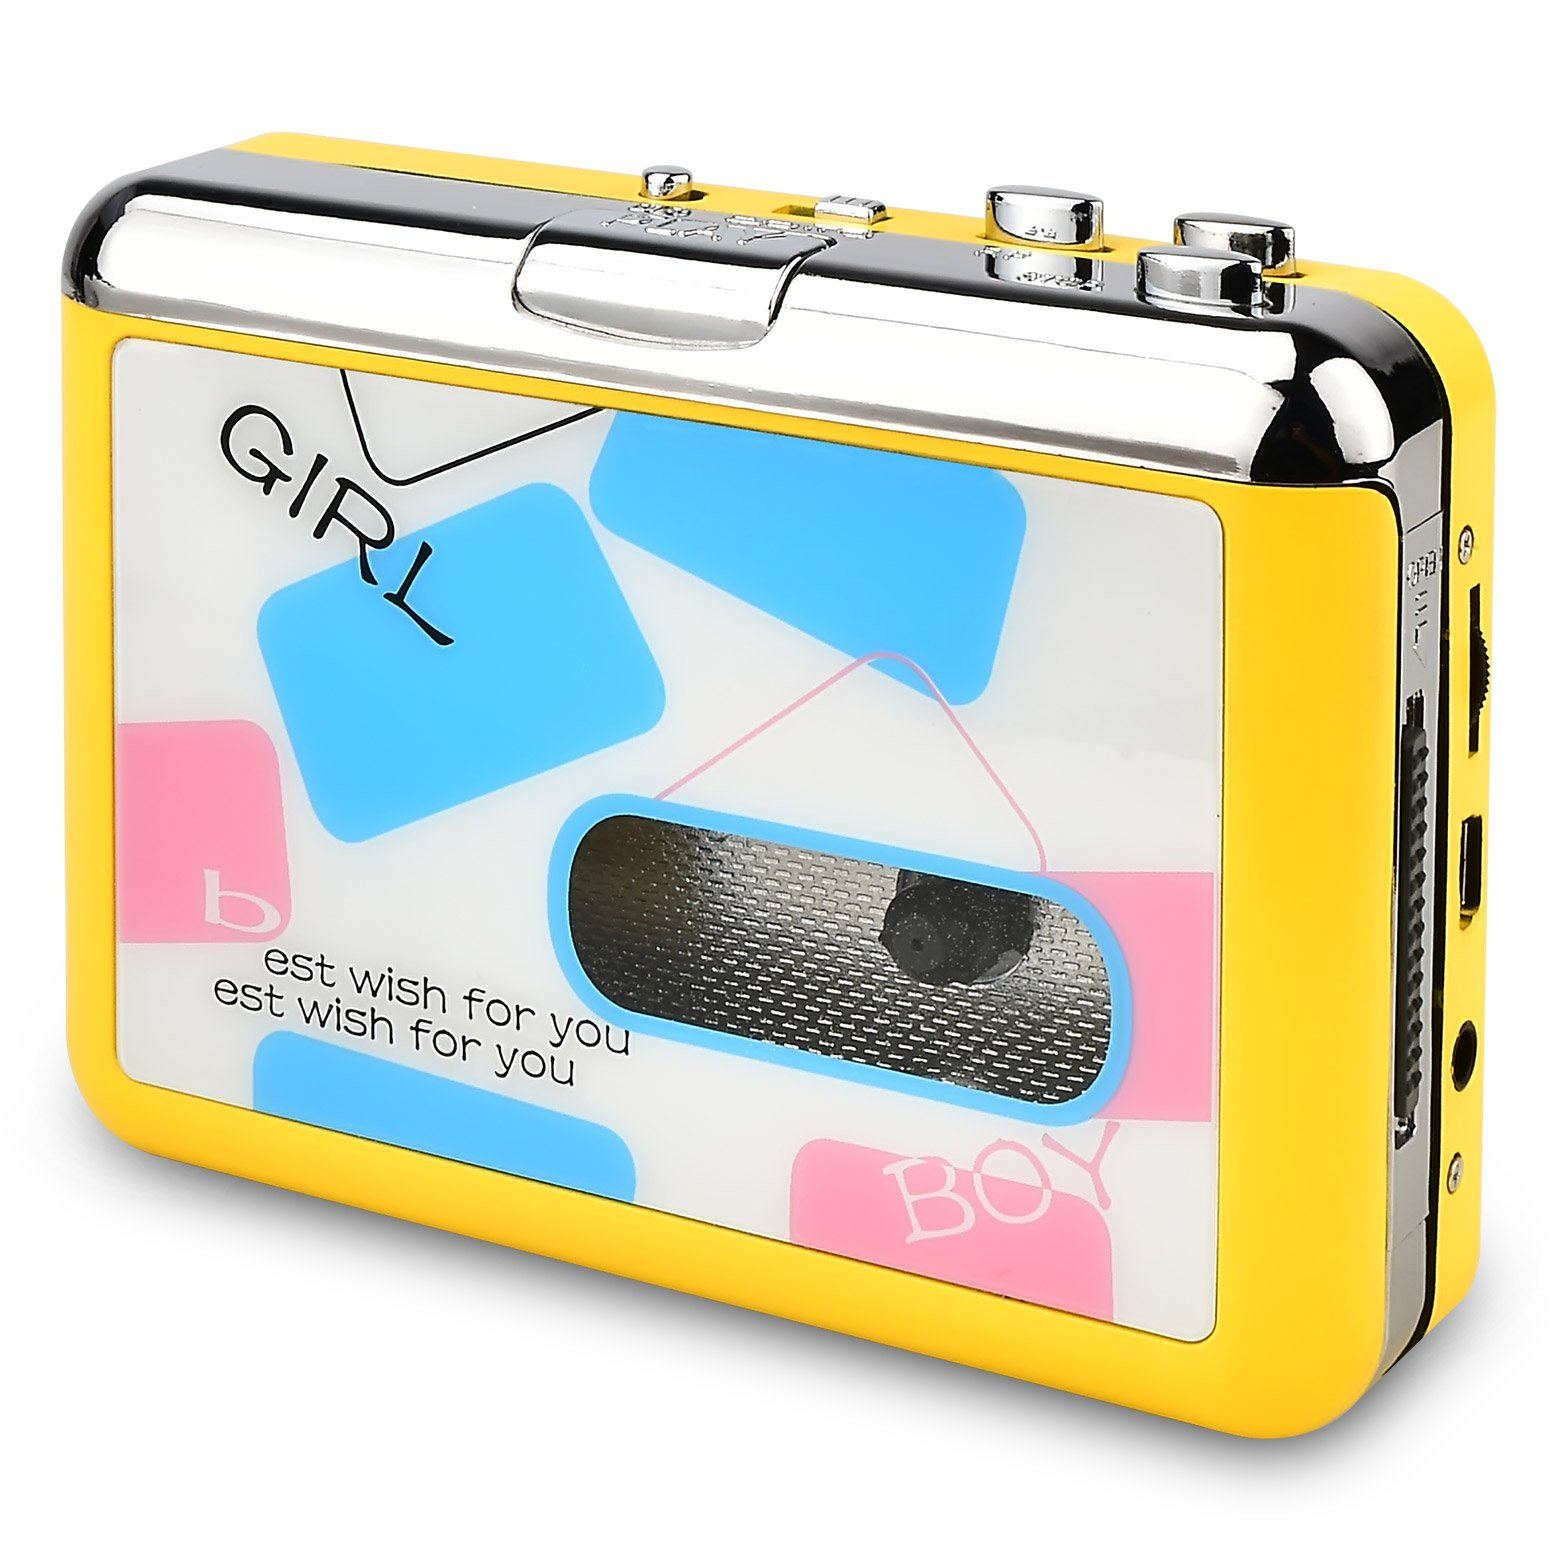 DIGITNOW Cassette Player-Cassette Tape To MP3 CD Converter Via USB,Portable Cassette Tape Converter Captures MP3 Audio Music,Convert Walkman Tape Cassette To MP3 Format (yellow)